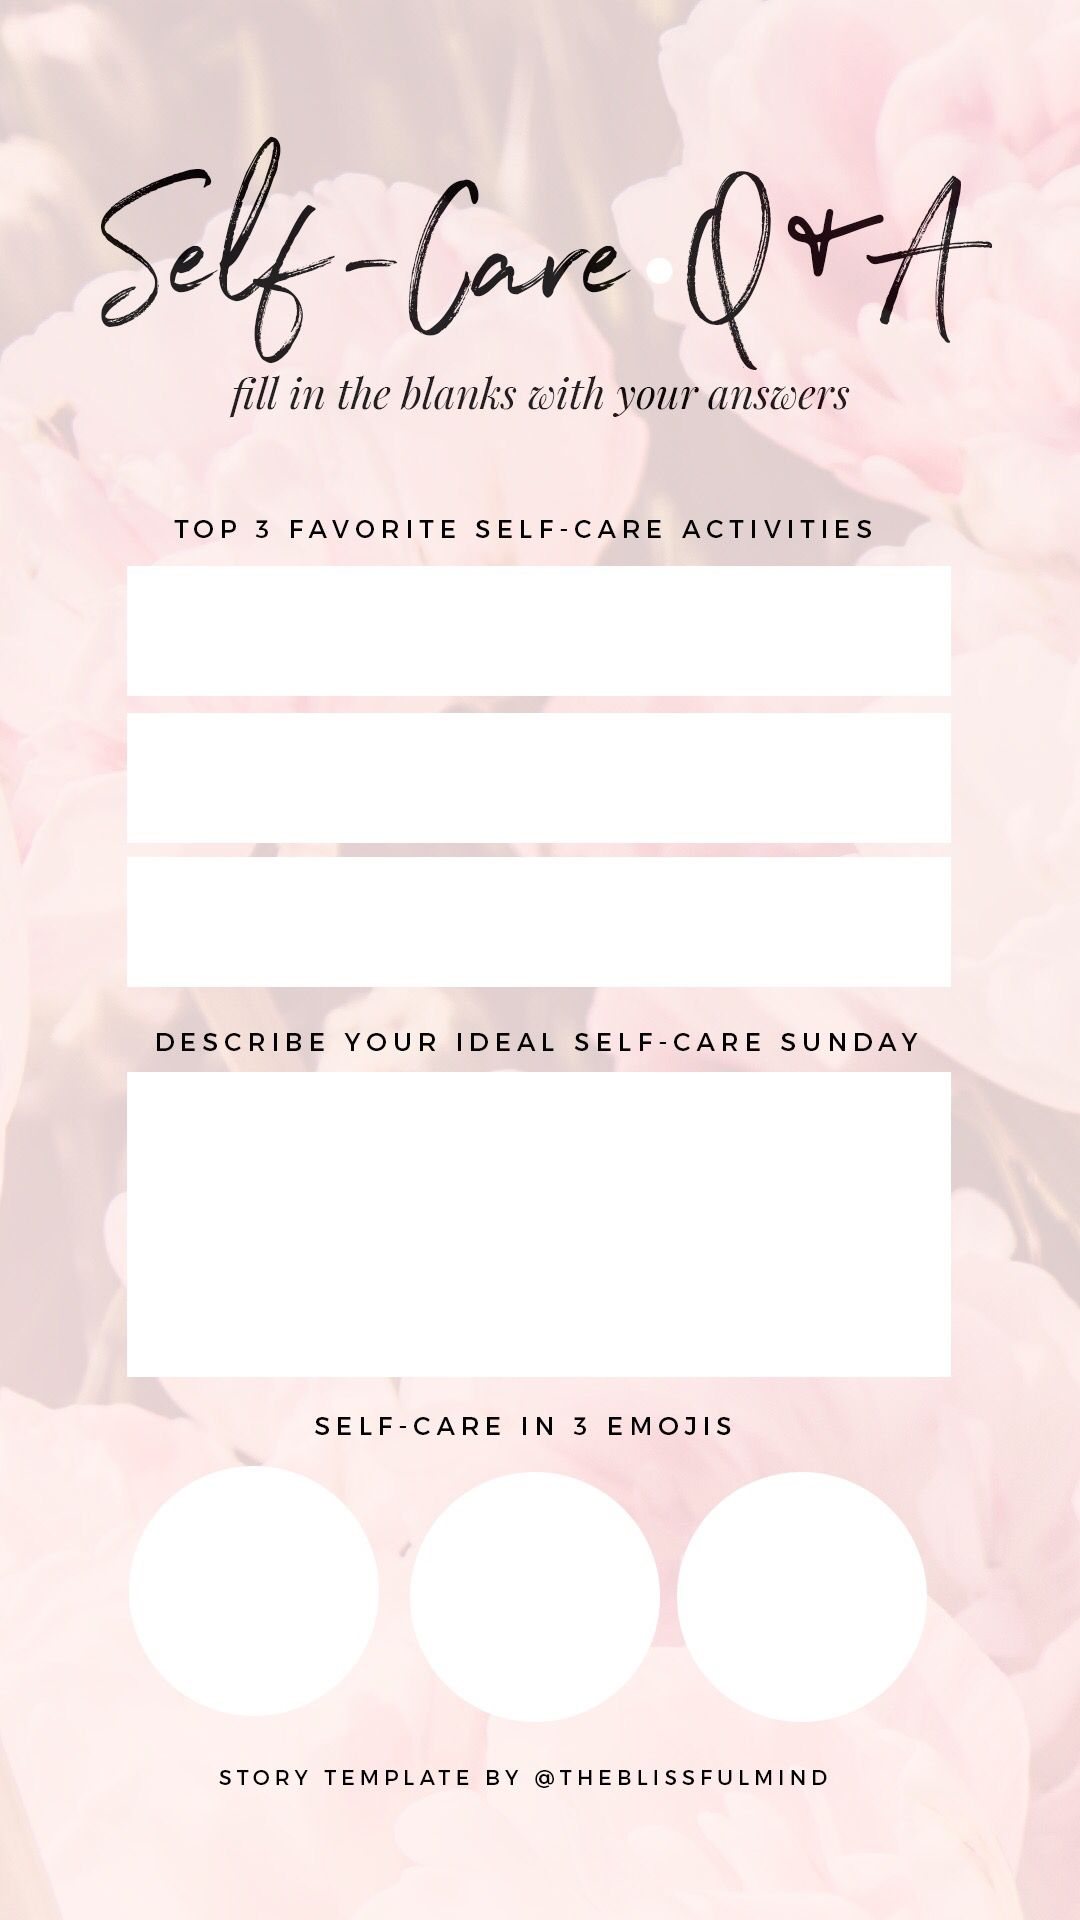 Share Your Self Care Habits On Instagram With This Story